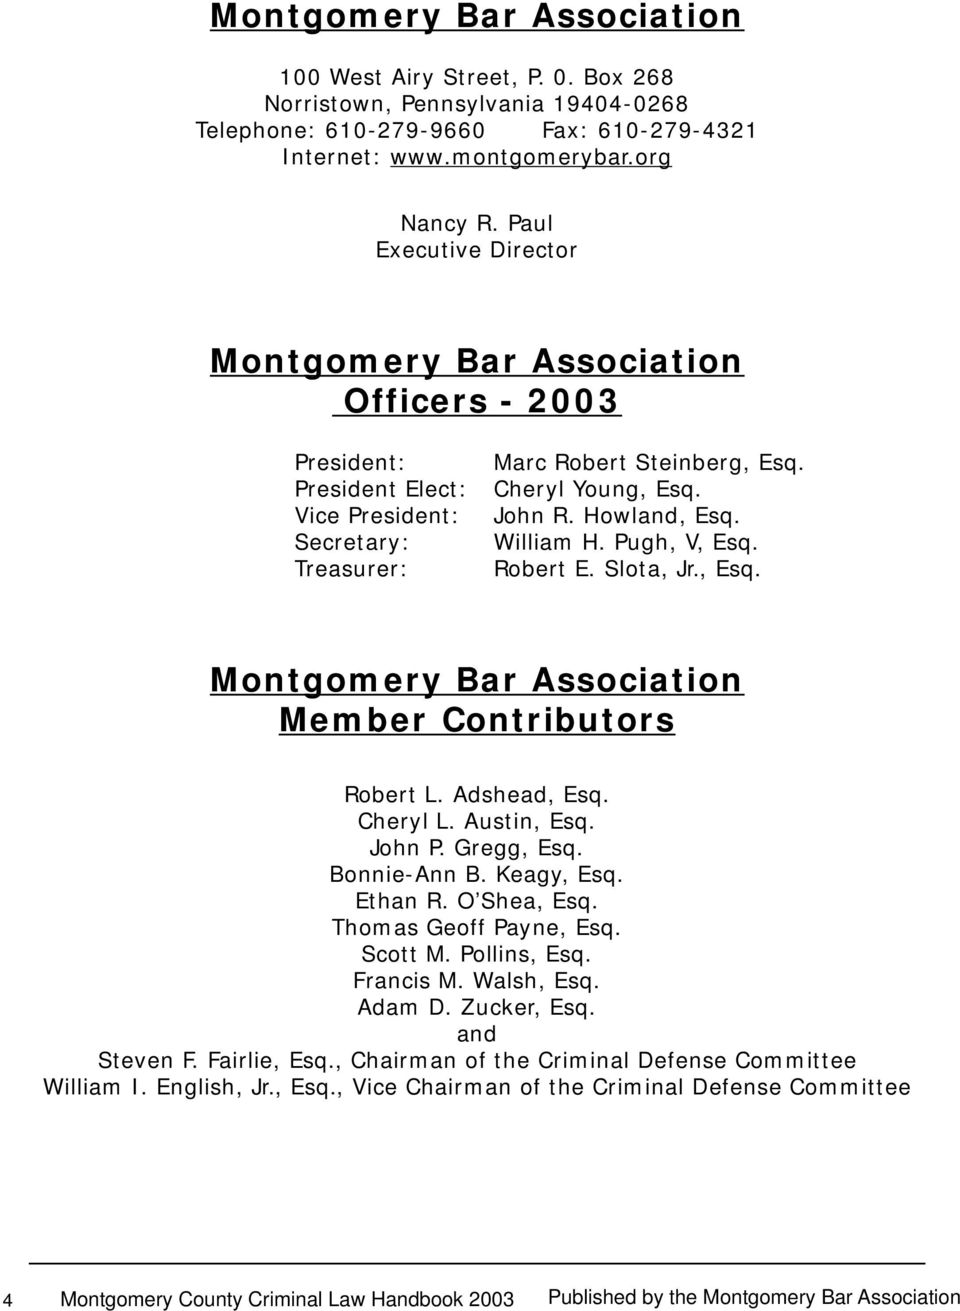 Howland, Esq. William H. Pugh, V, Esq. Robert E. Slota, Jr., Esq. Montgomery Bar Association Member Contributors Robert L. Adshead, Esq. Cheryl L. Austin, Esq. John P. Gregg, Esq. Bonnie-Ann B.